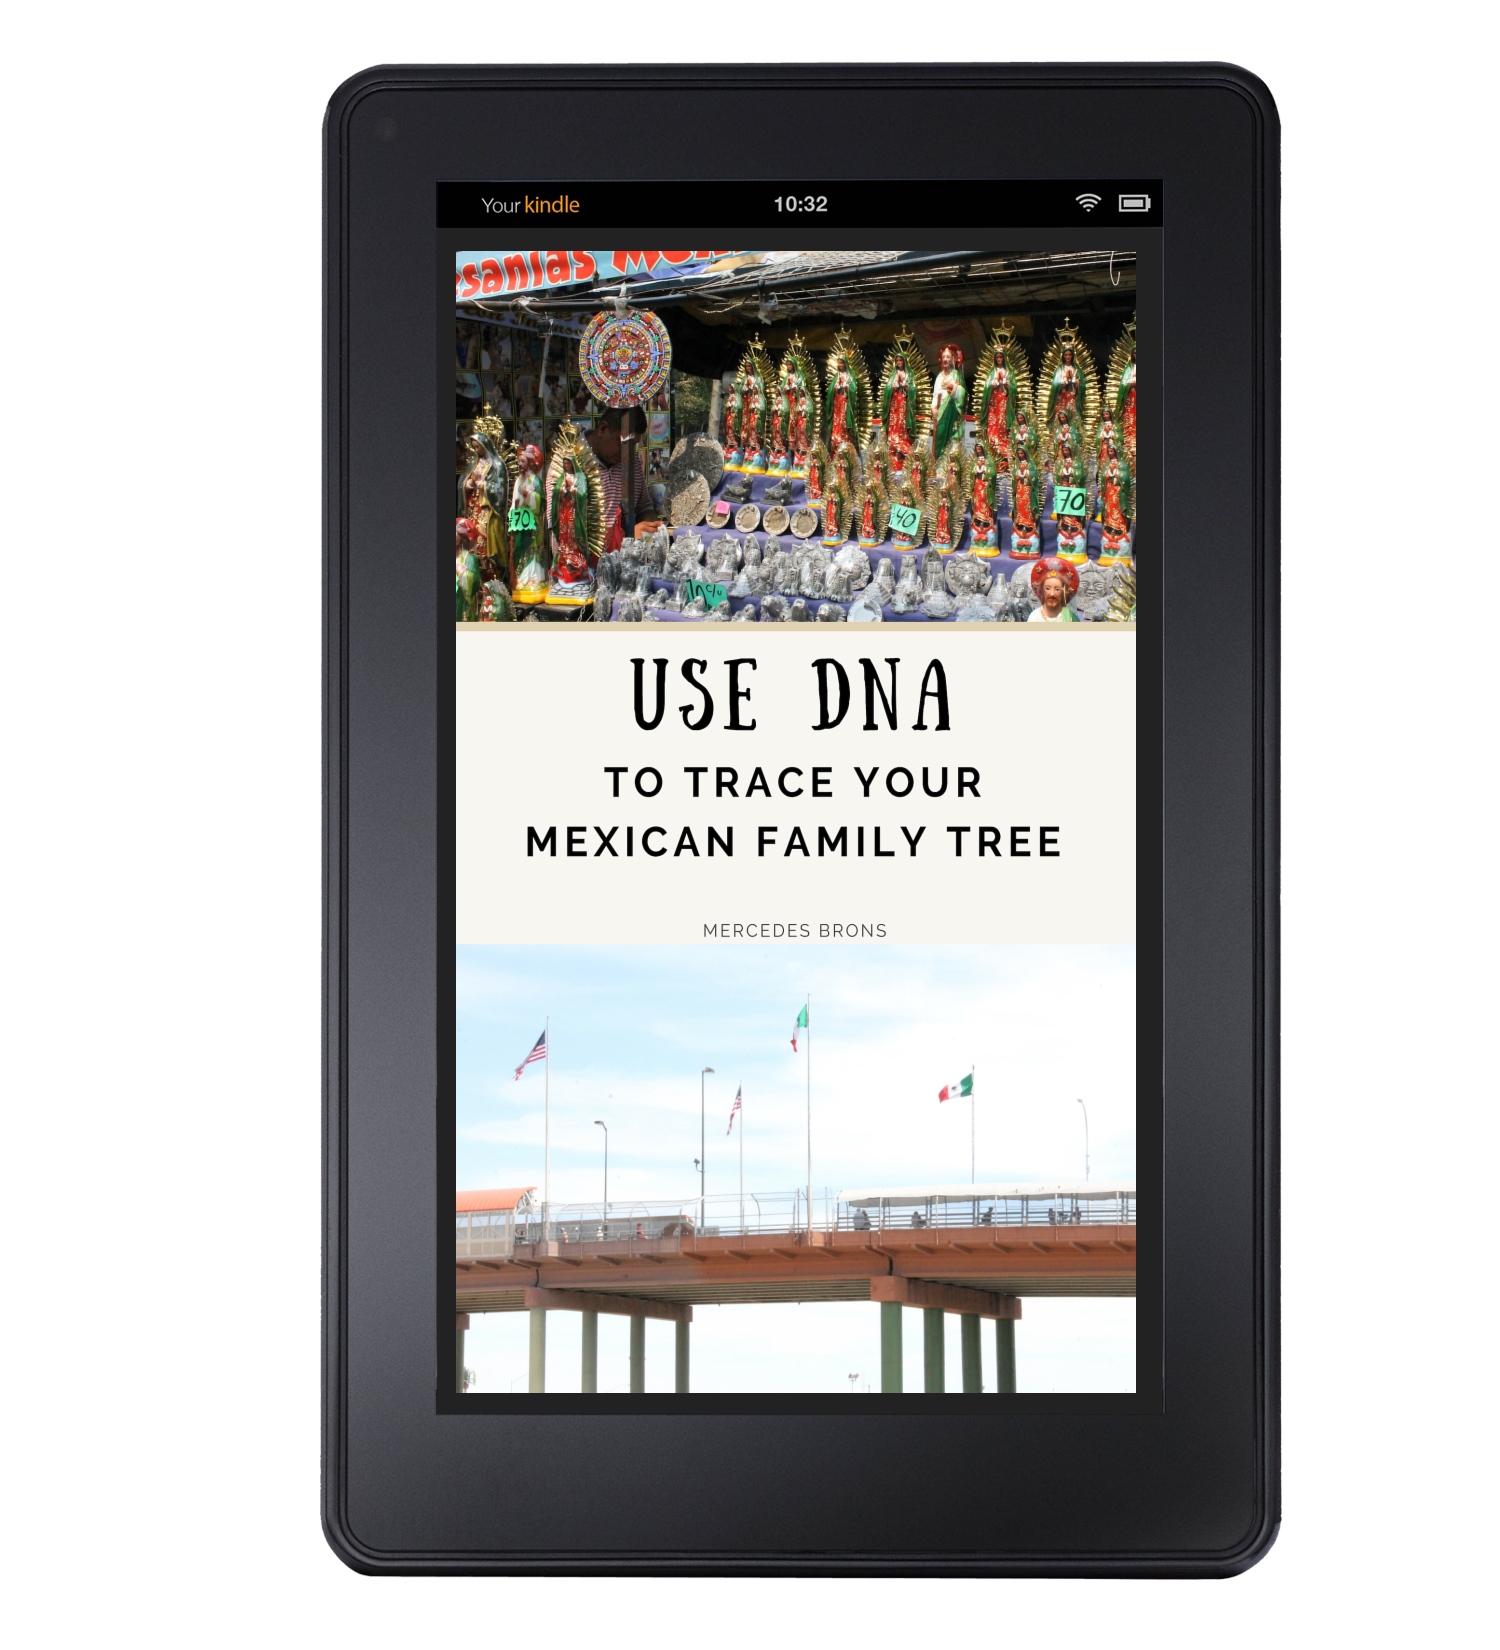 Use DNA to Trace Your Mexican Family Tree